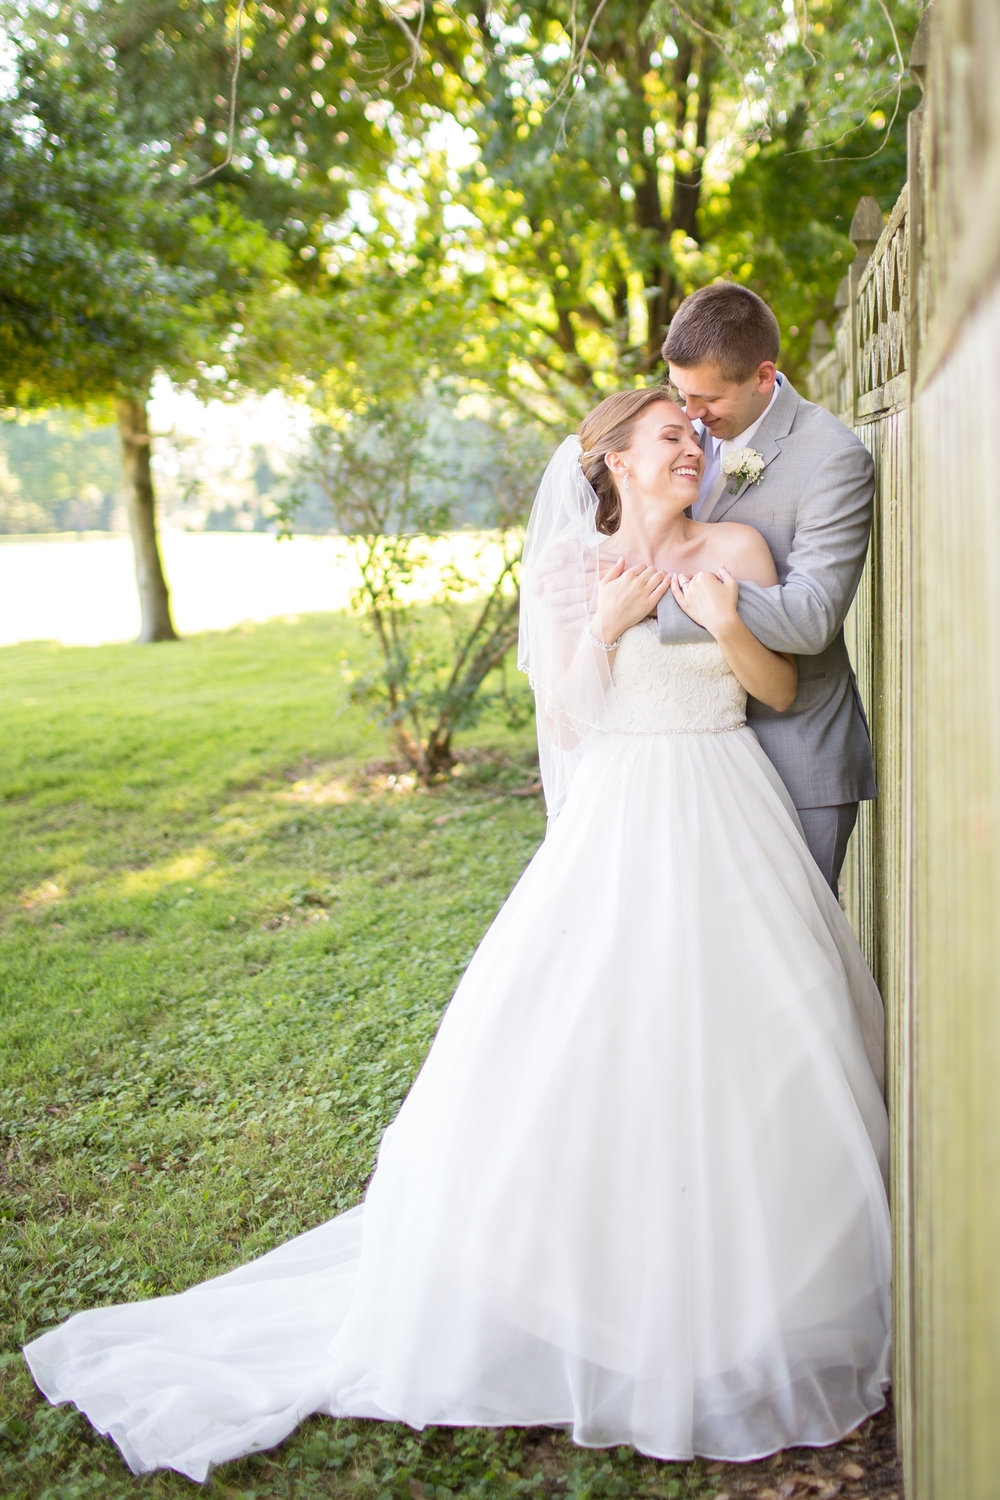 Mroz 5-Bride & Groom Portraits-633_anna grace photography top of the bay maryland wedding photographer photo.jpg